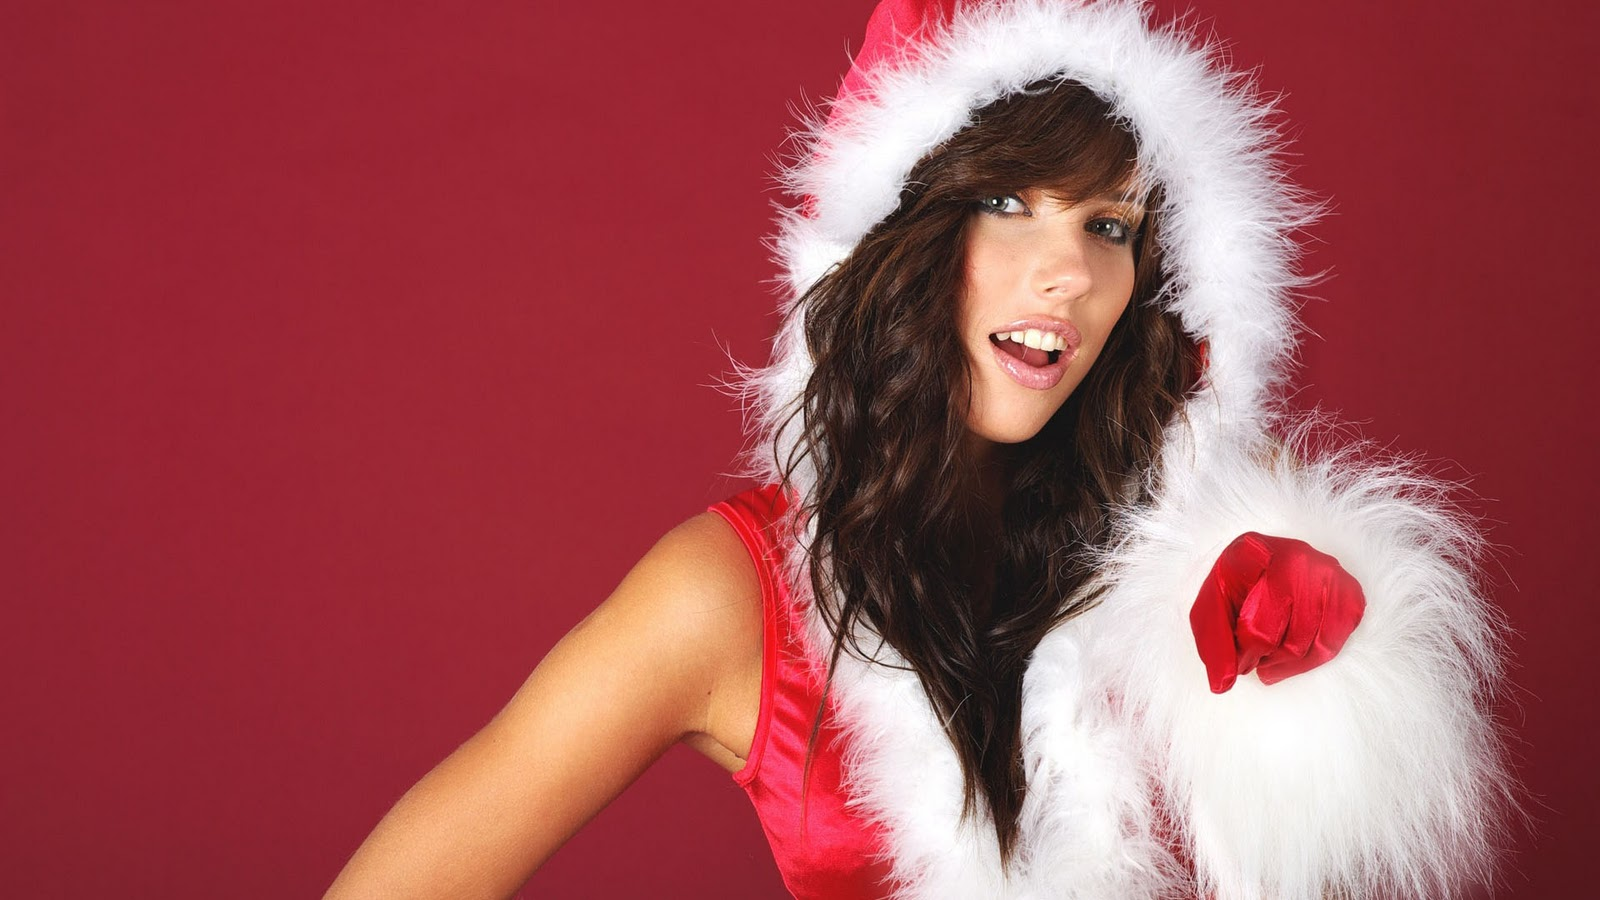 23 Beautiful Sexy Christmas Backgrounds Wallpapers